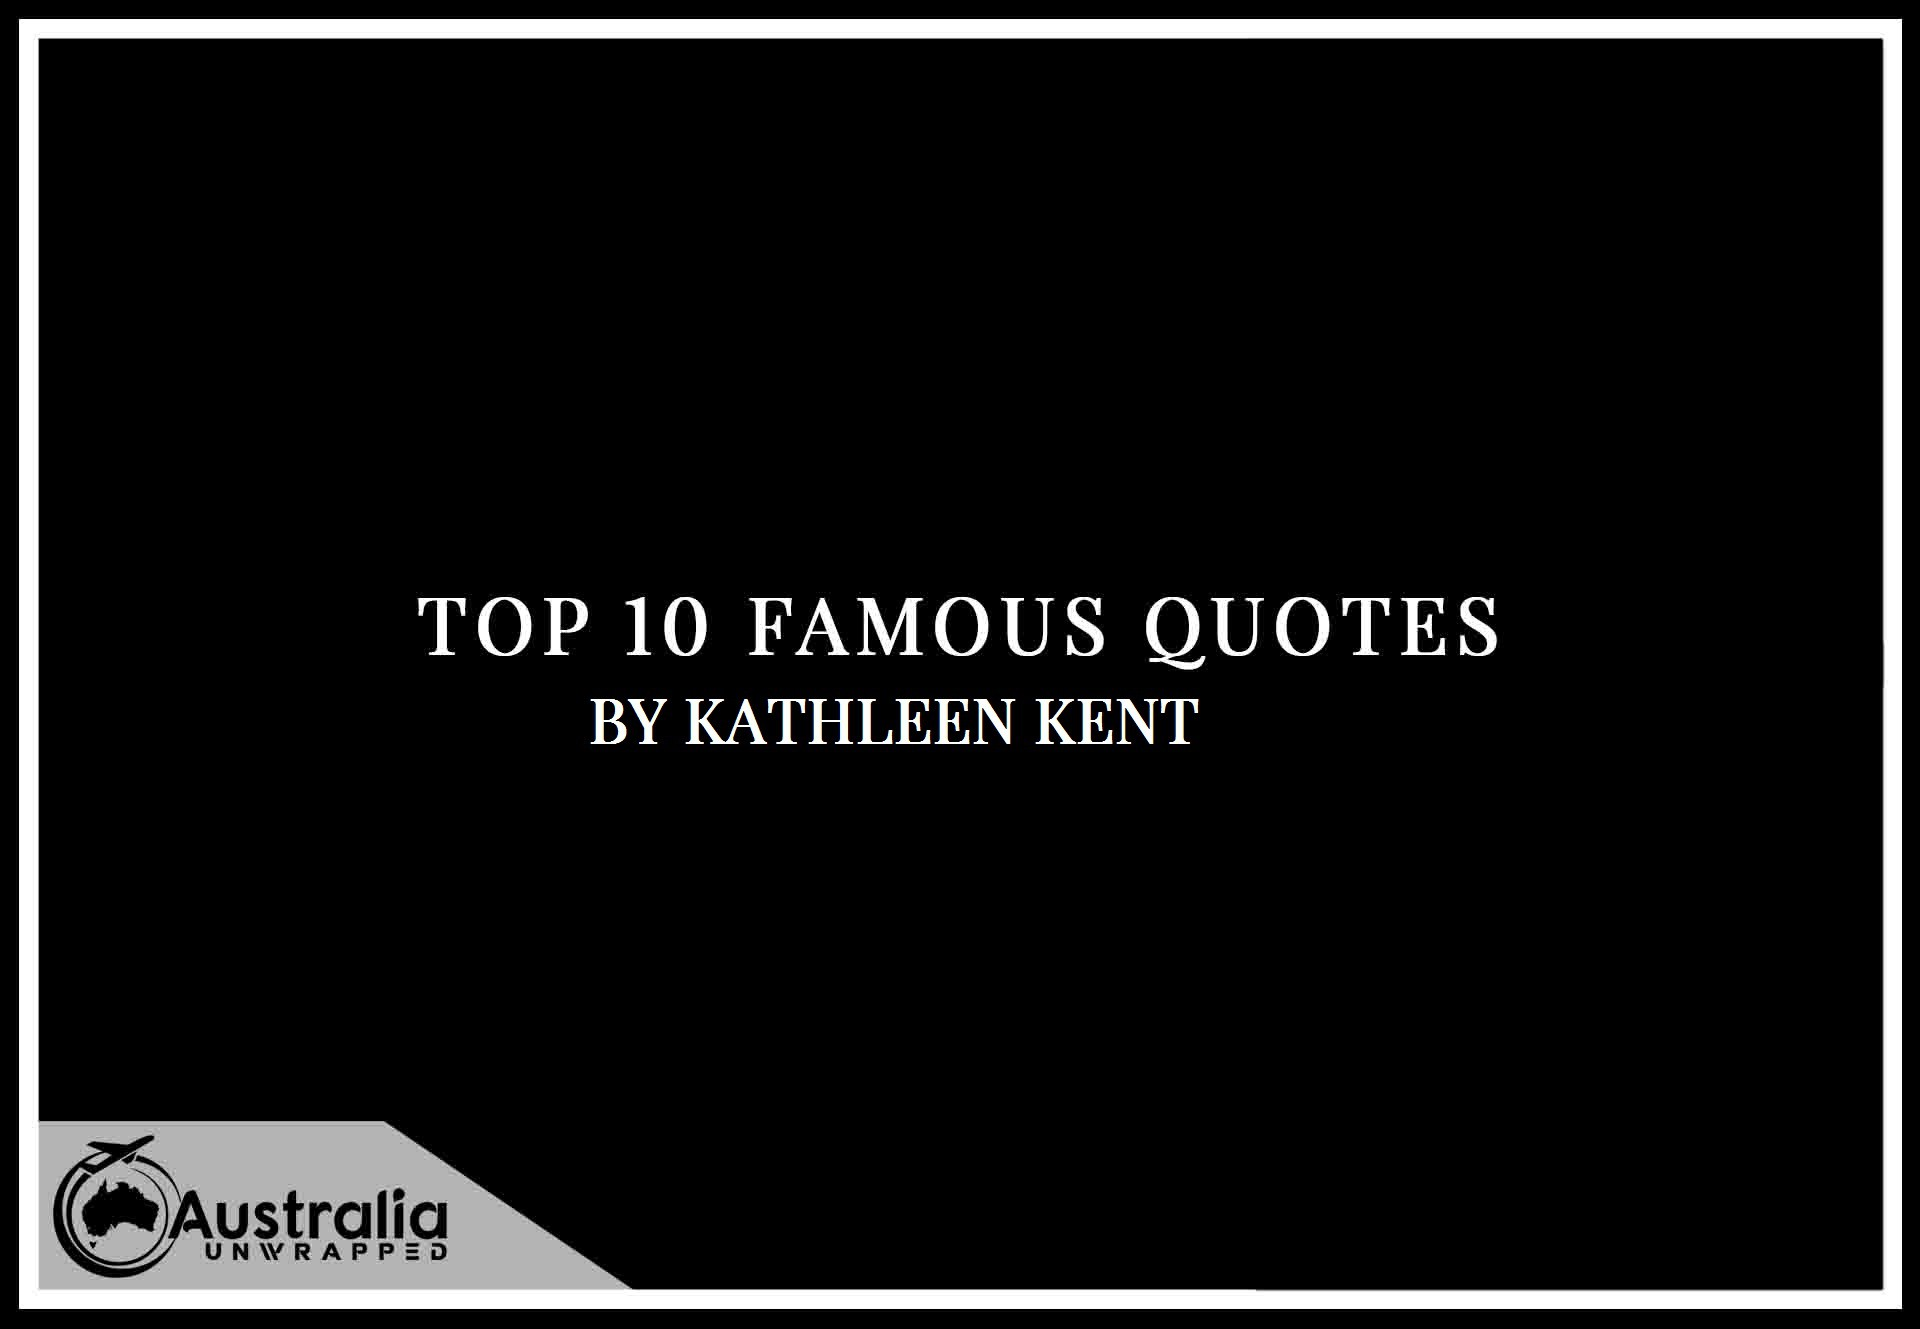 Kathleen Kent's Top 10 Popular and Famous Quotes